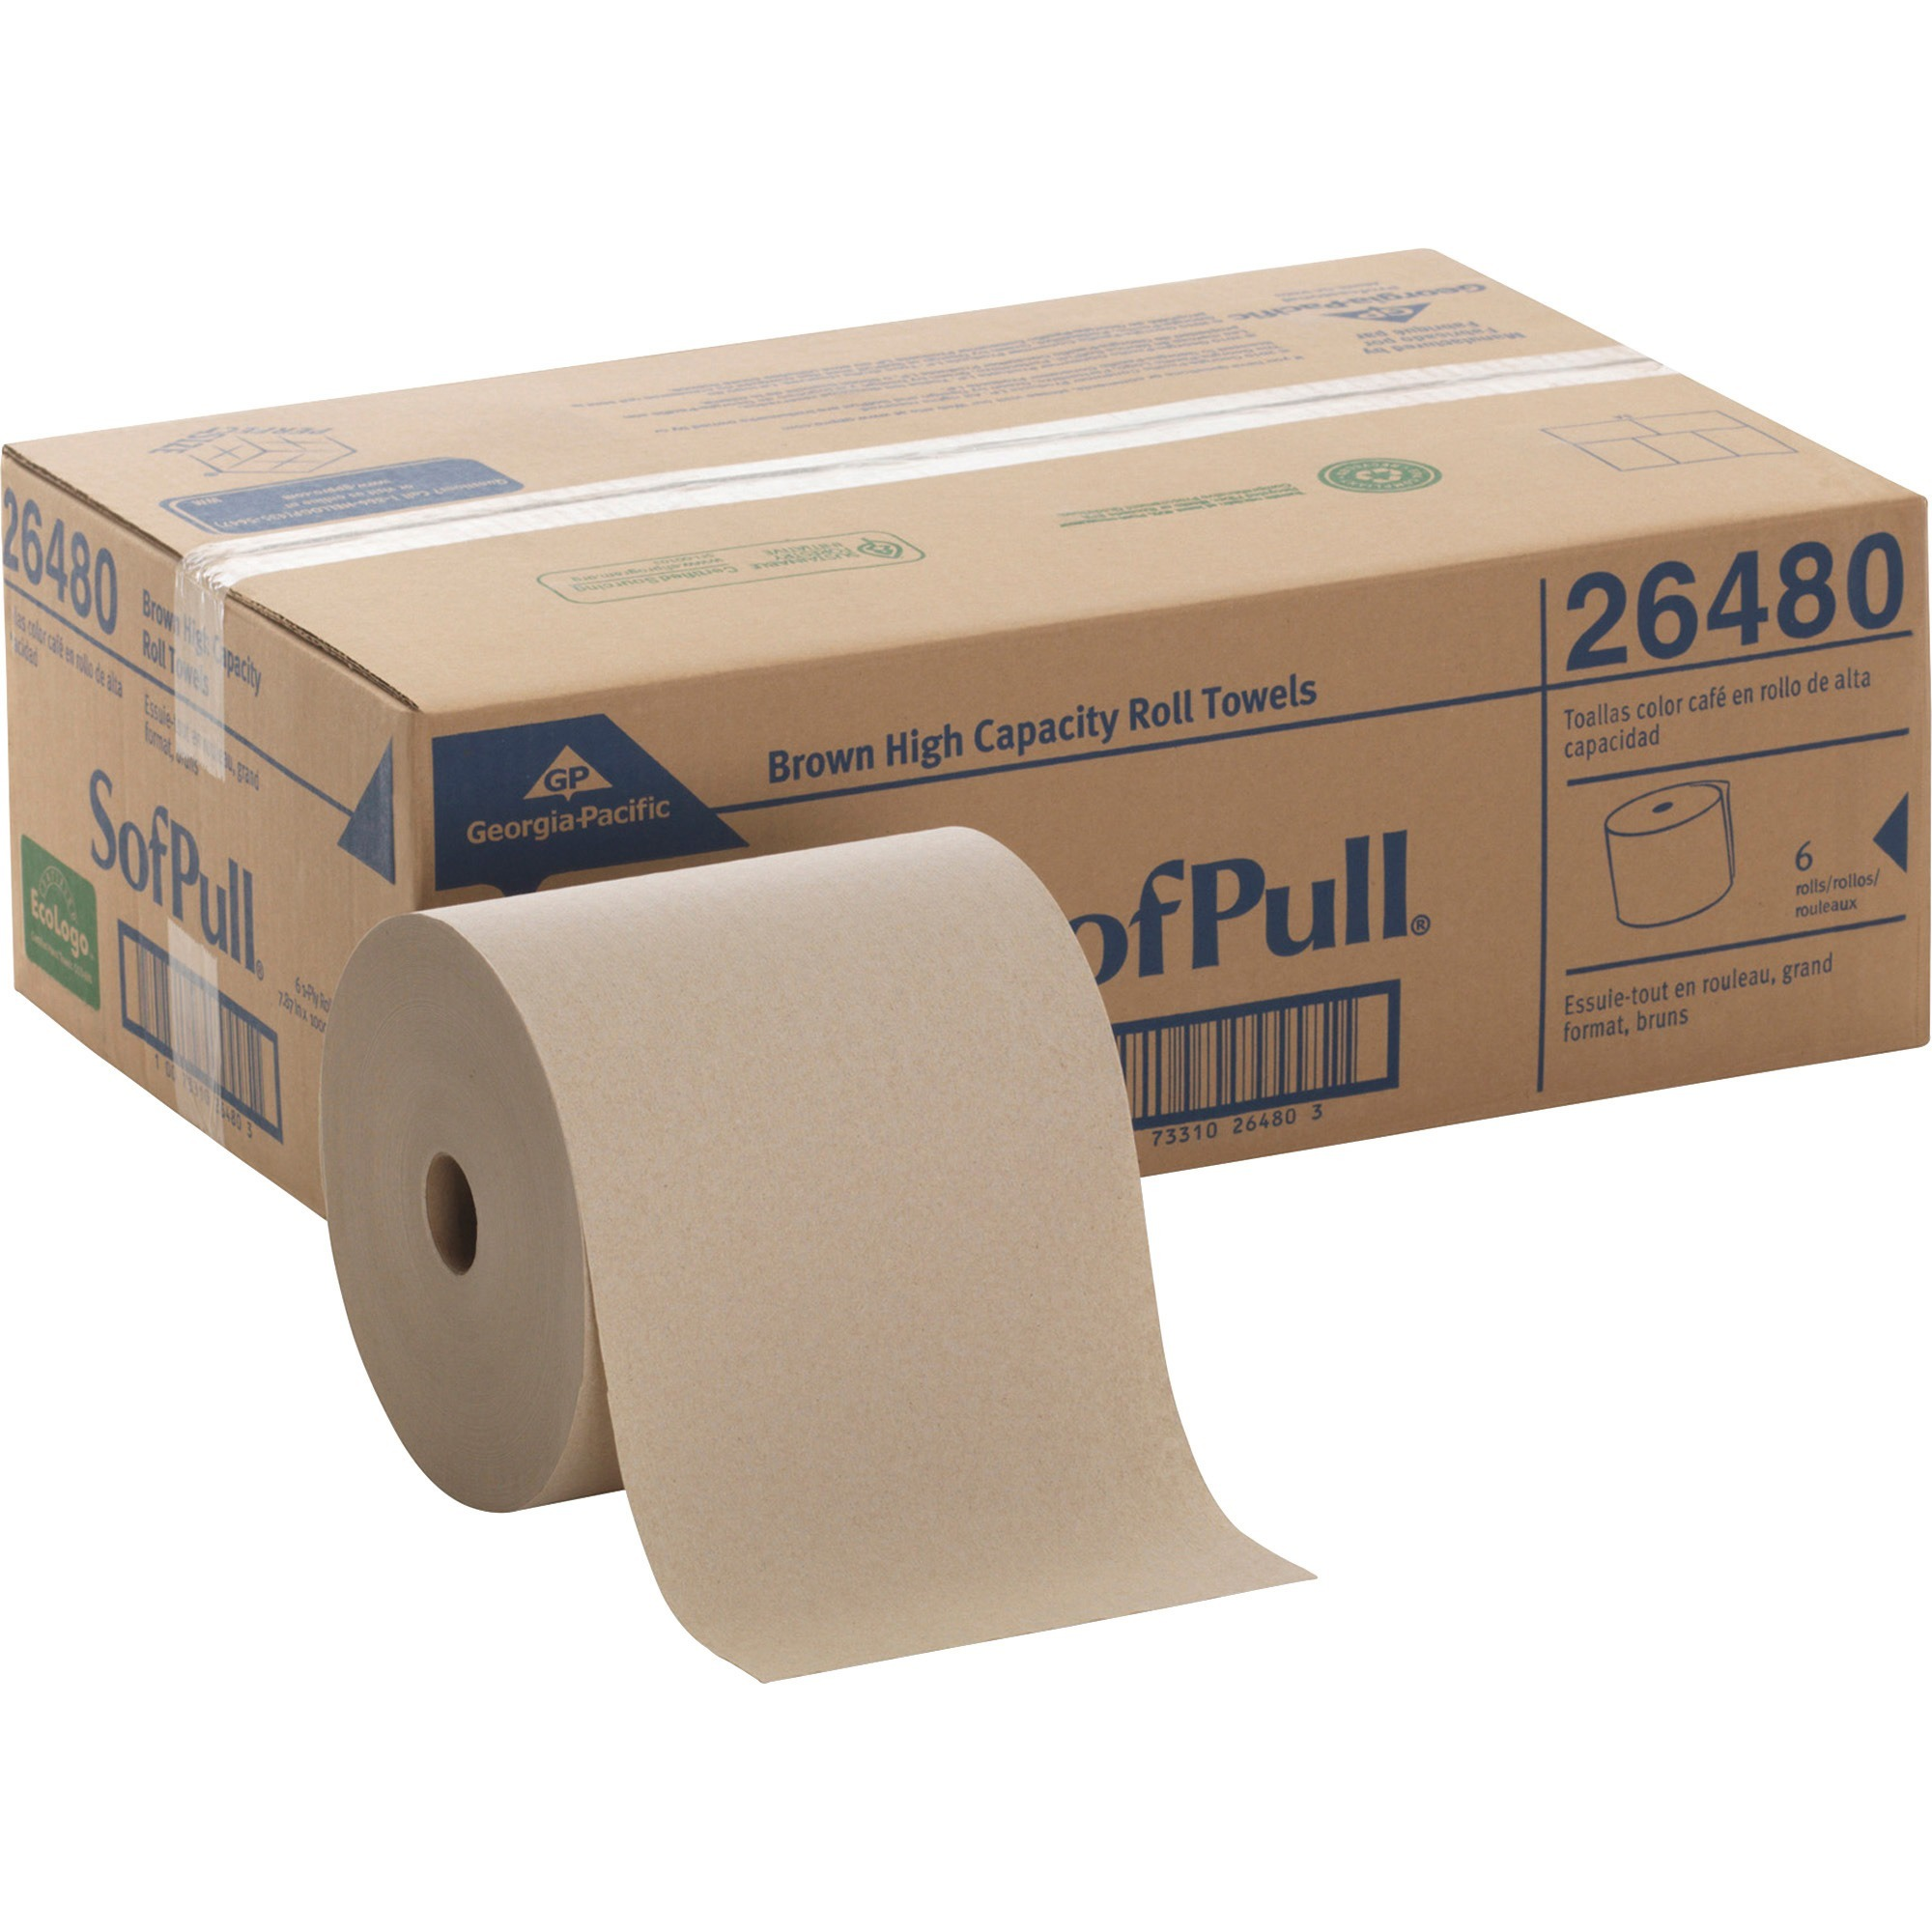 SofPull, GPC26480, Hardwound Brown Roll Paper Towels, 6 / Carton, Brown